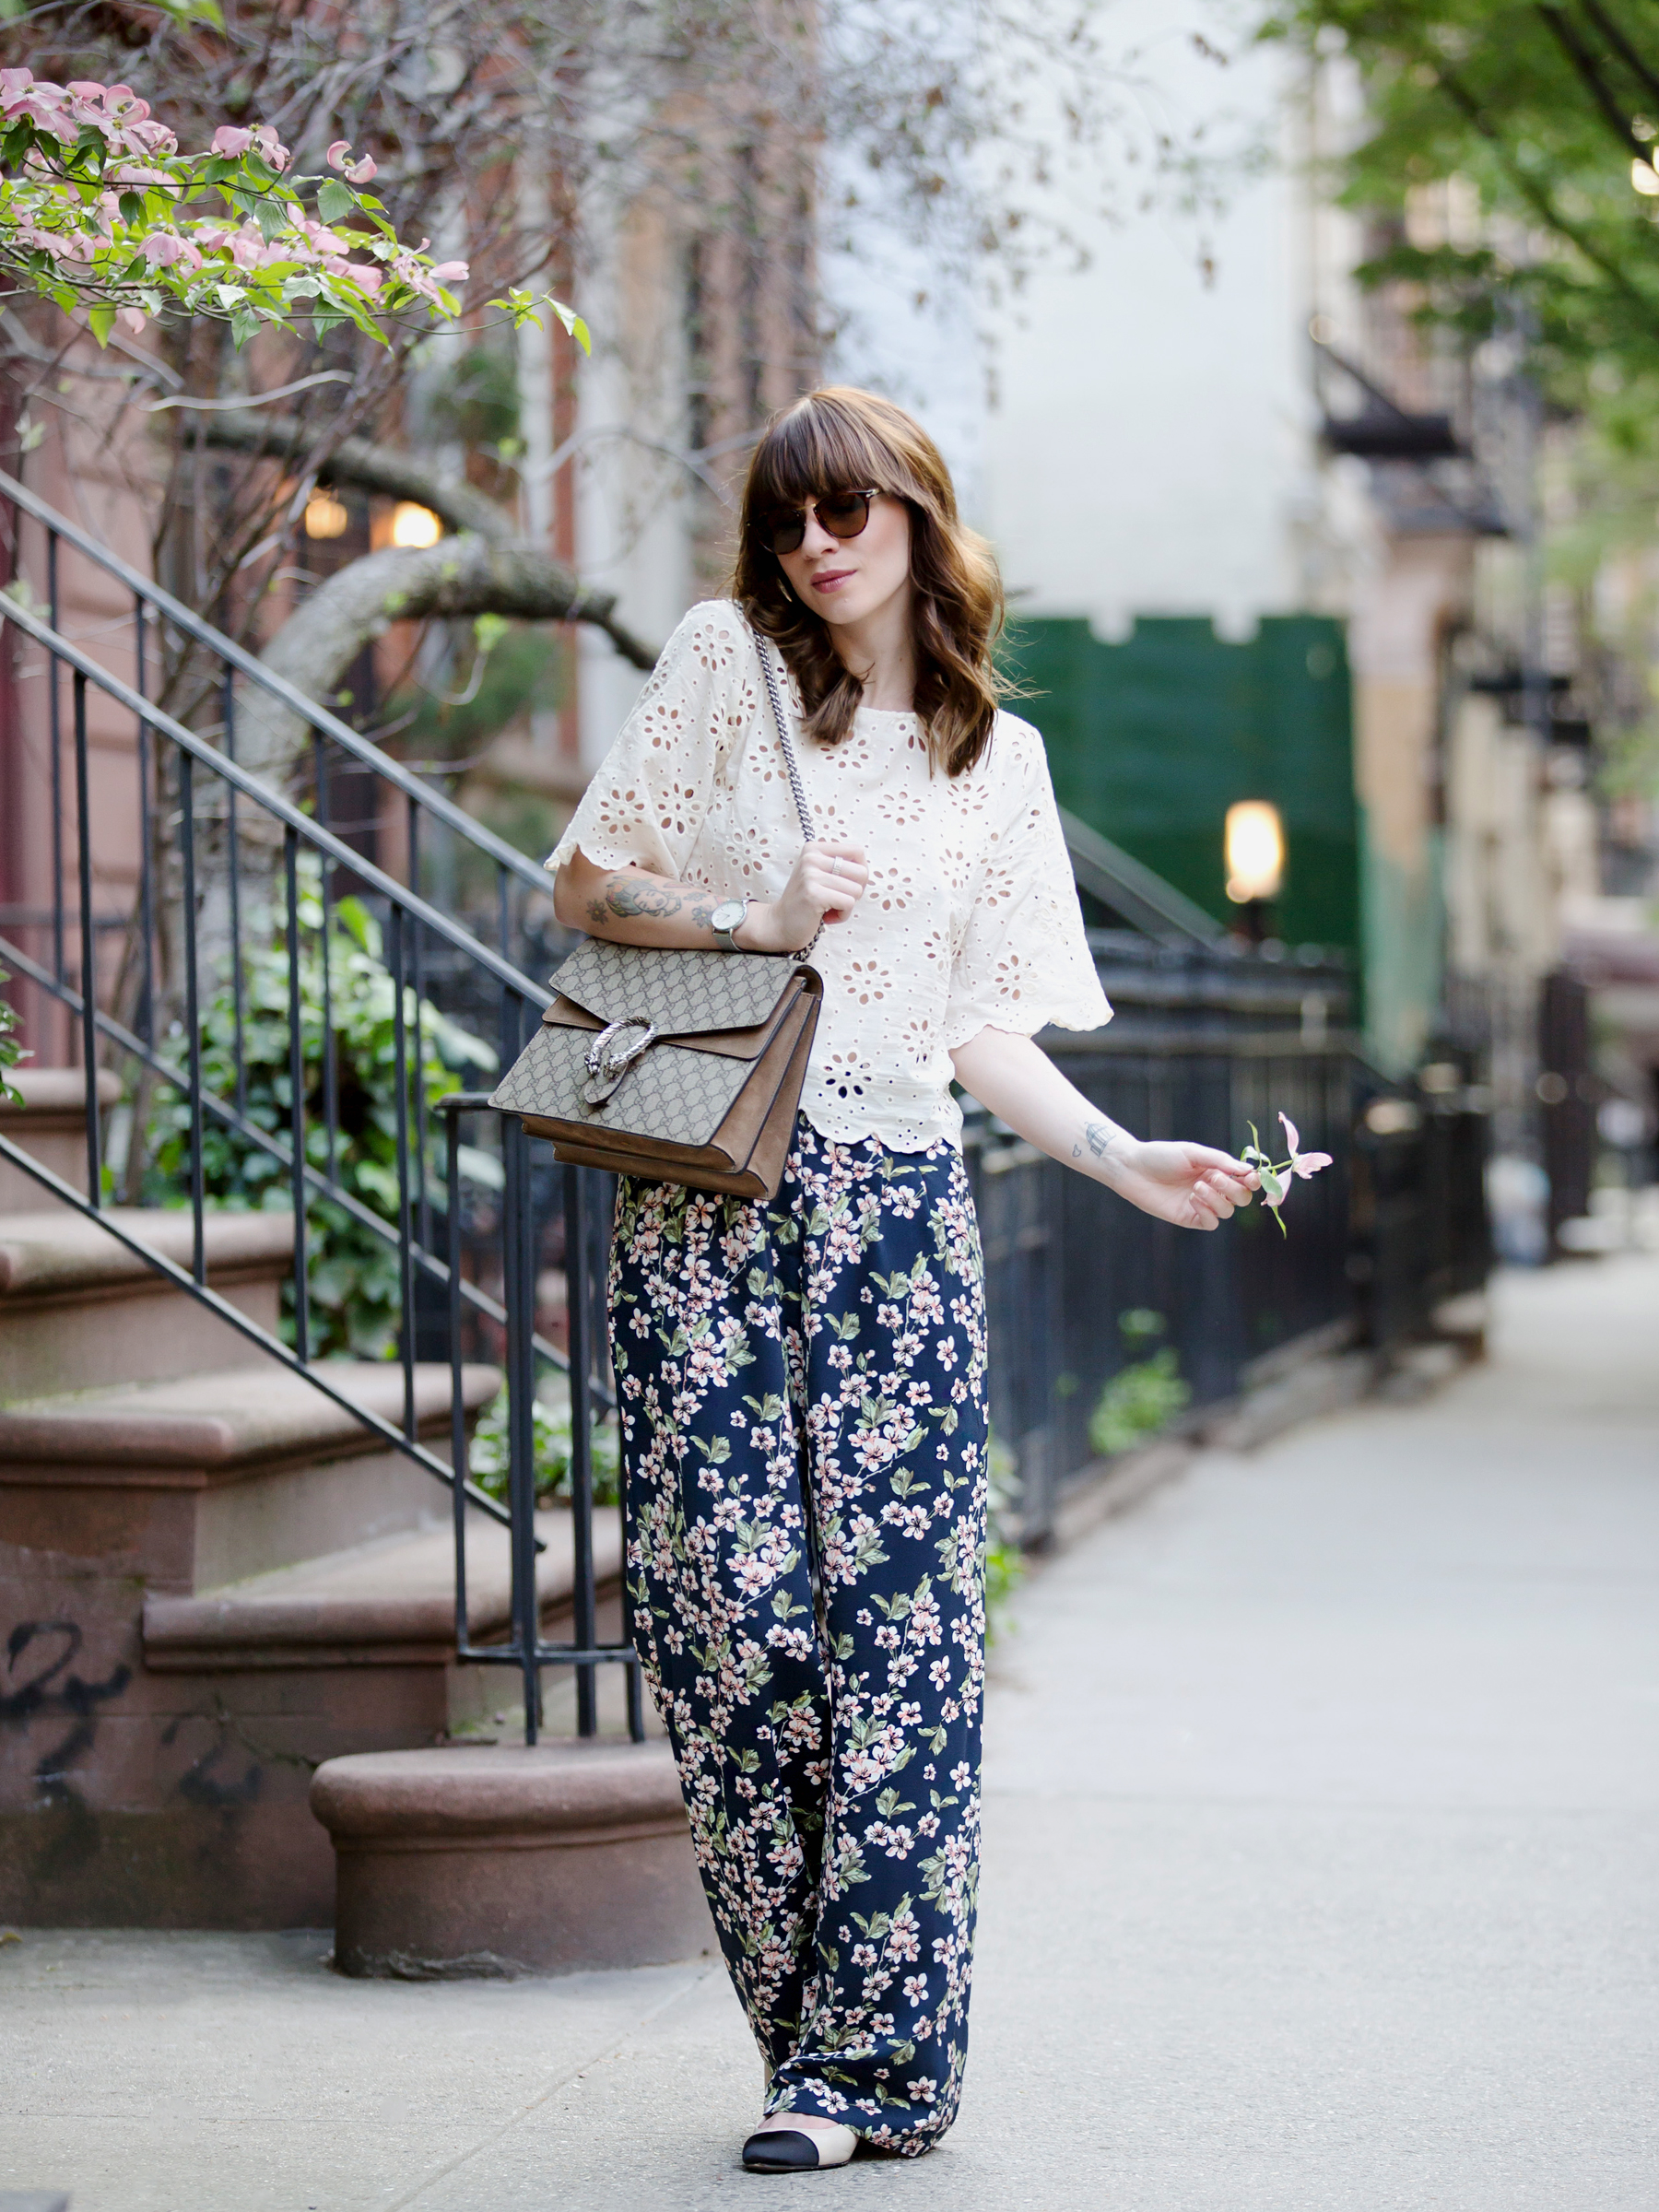 new york city streetstyle fashion fashionblogger mint&berry persol mister spex gucci dionysus luxury fashion styling look summer flowers floral cats & dogs modeblog ricarda schernus fashionblogger germany 3